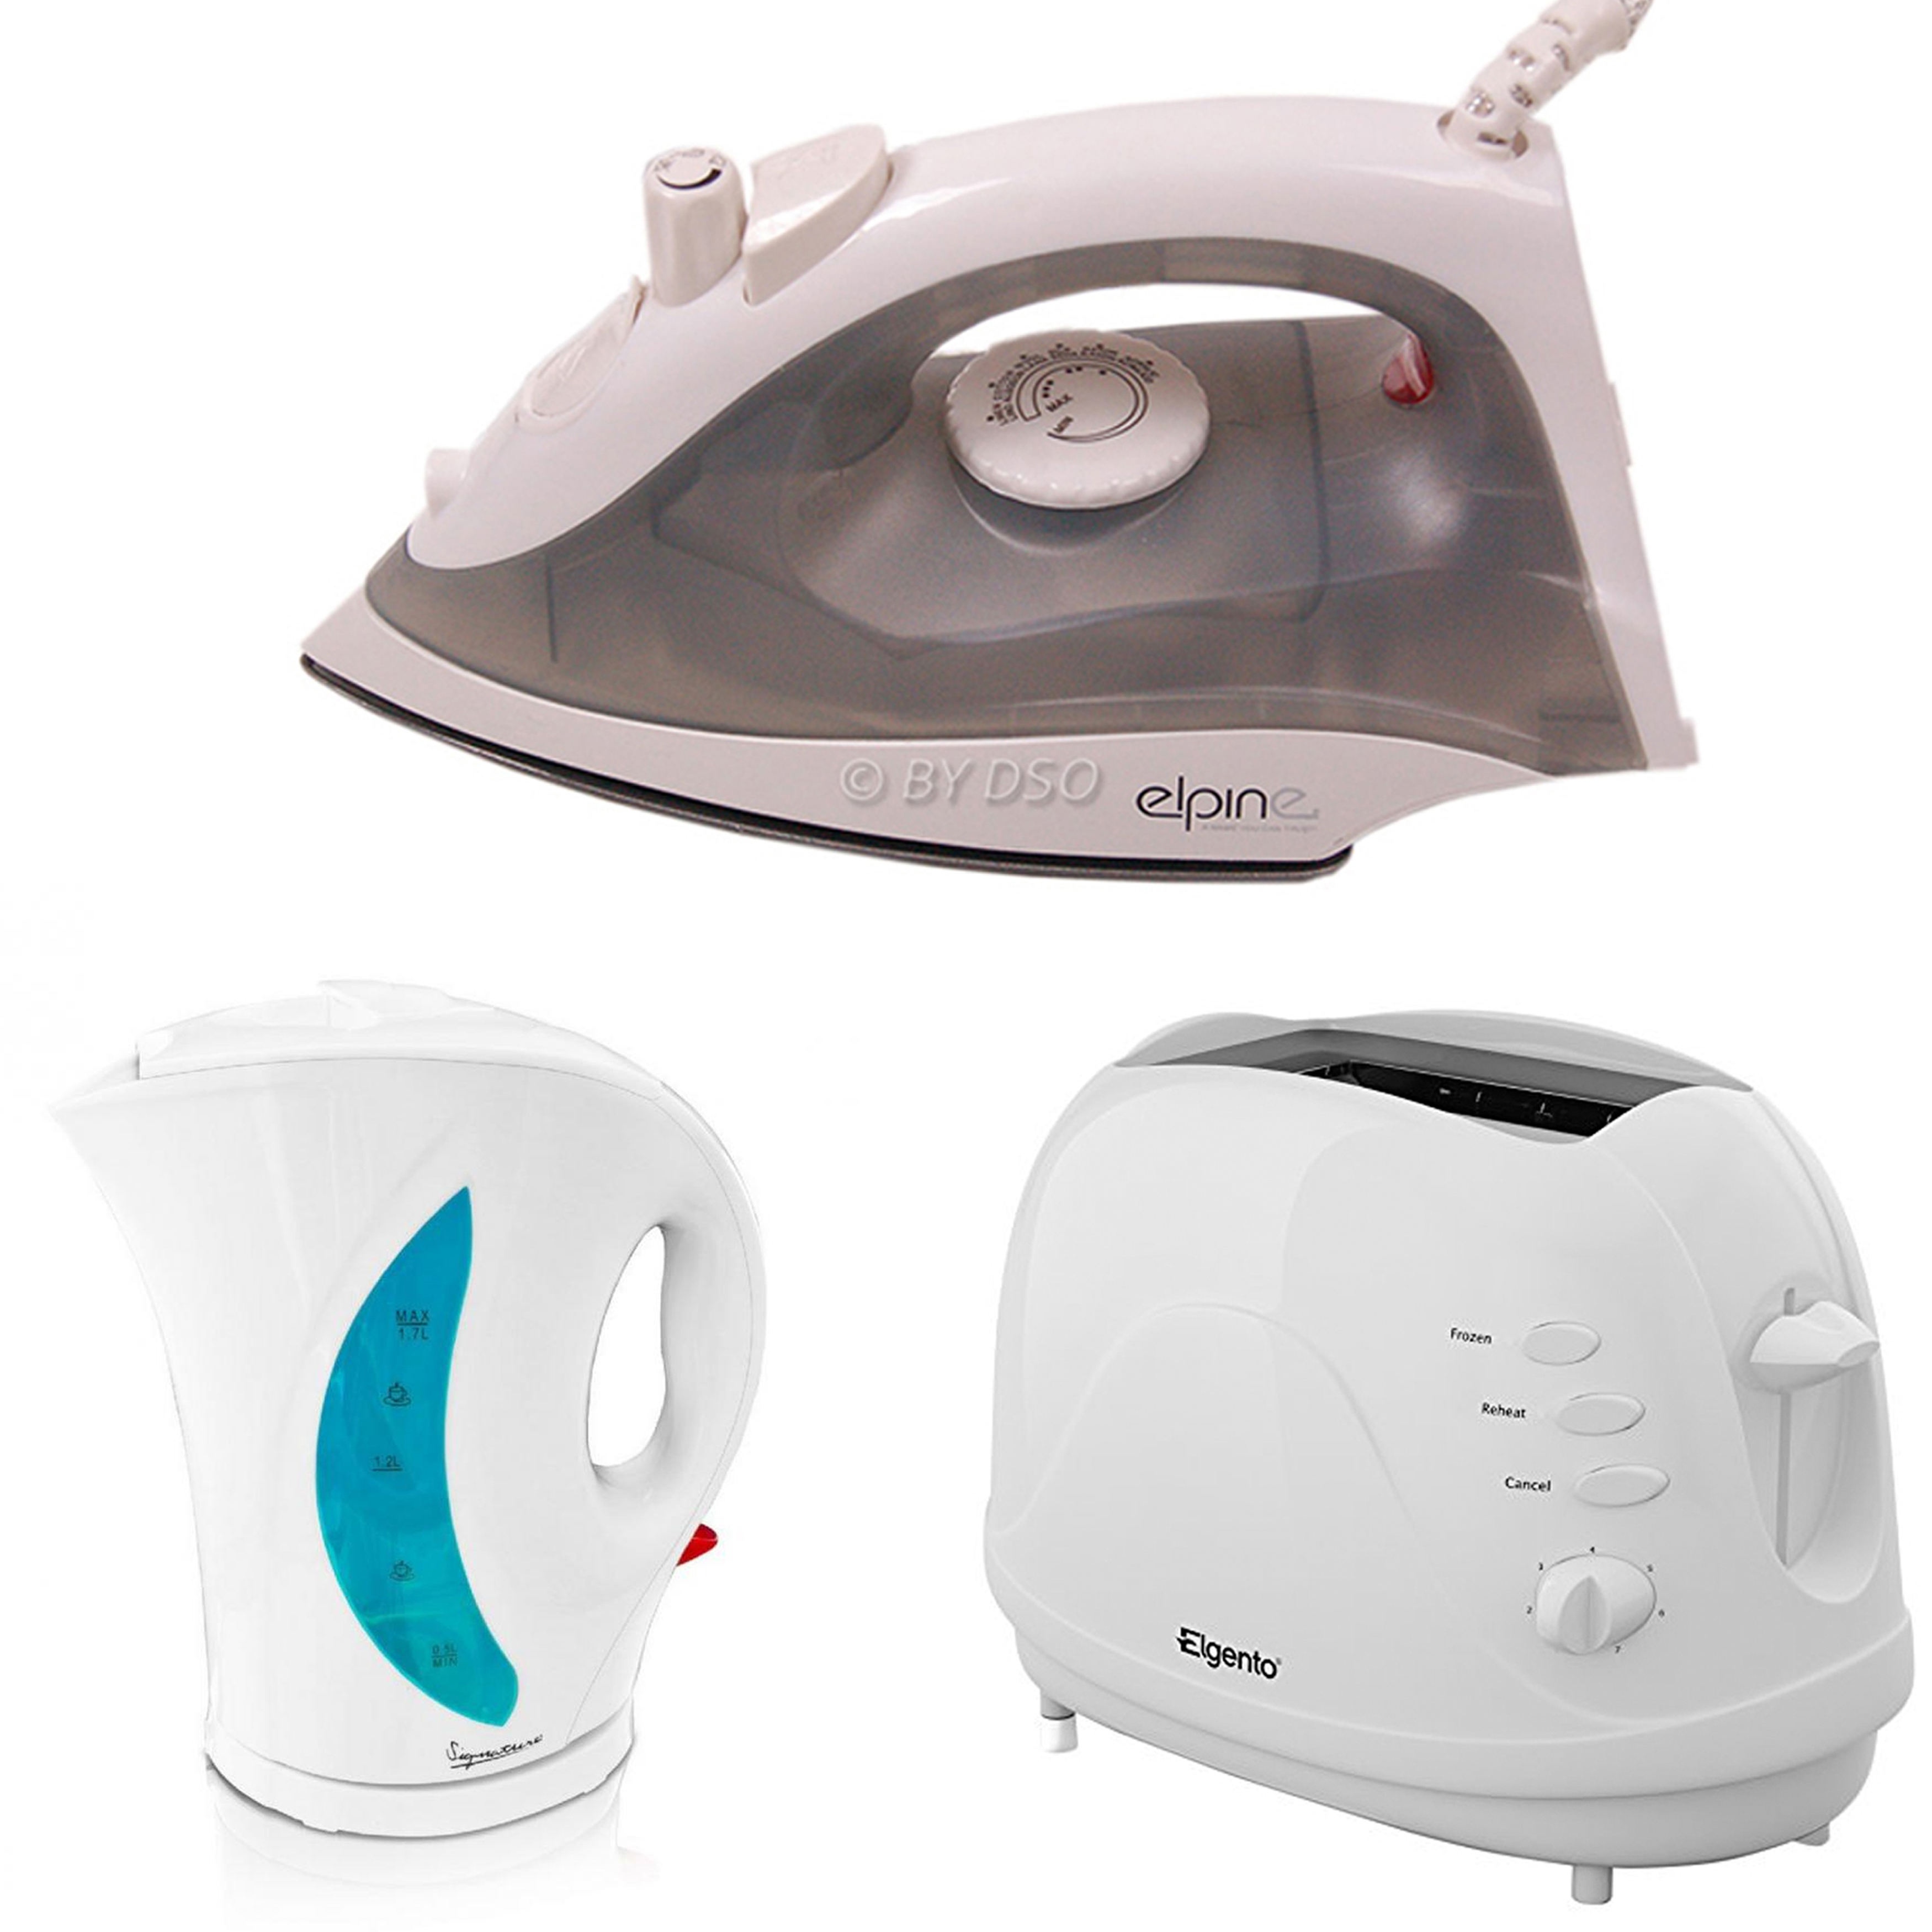 Student essential basic kitchen and home appliance set ebay for Essential appliances for a new home